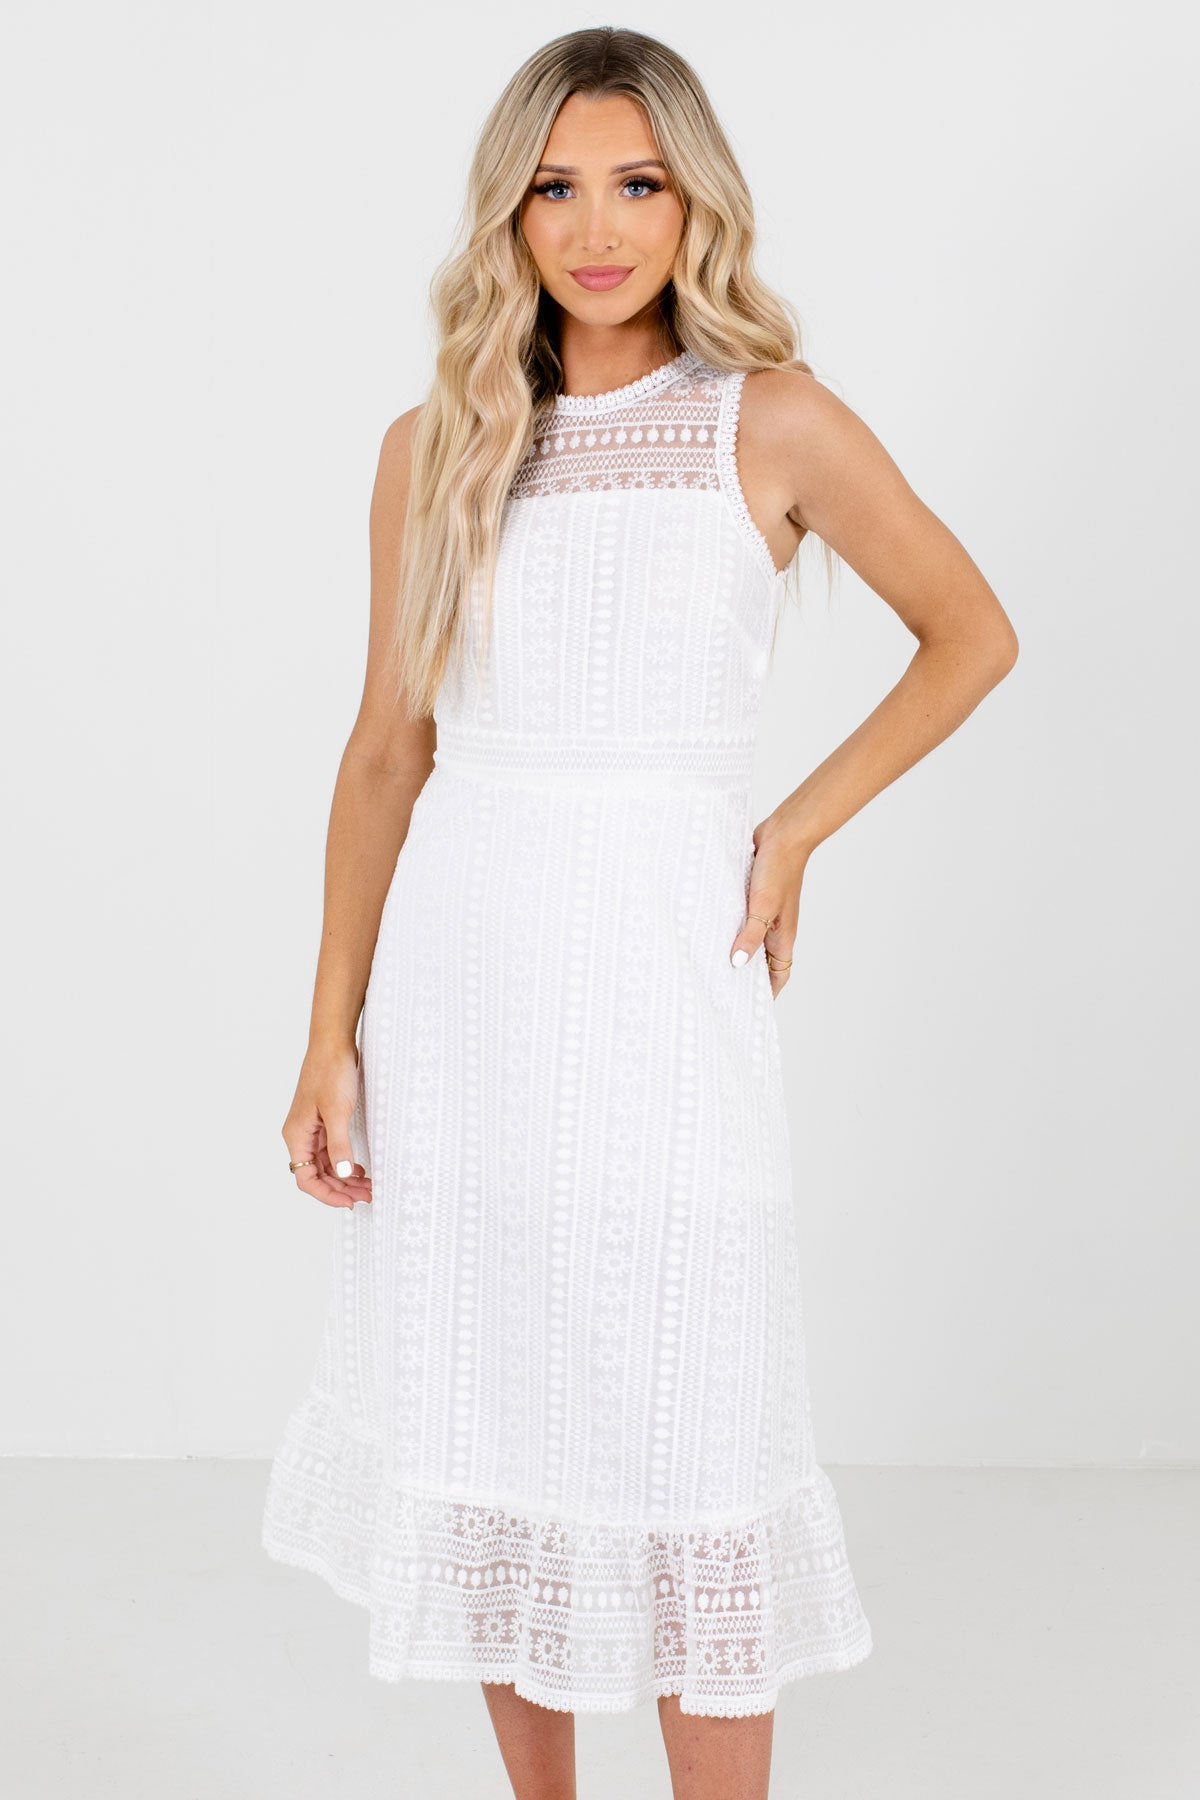 White High Round Neckline Boutique Midi Dresses for Women